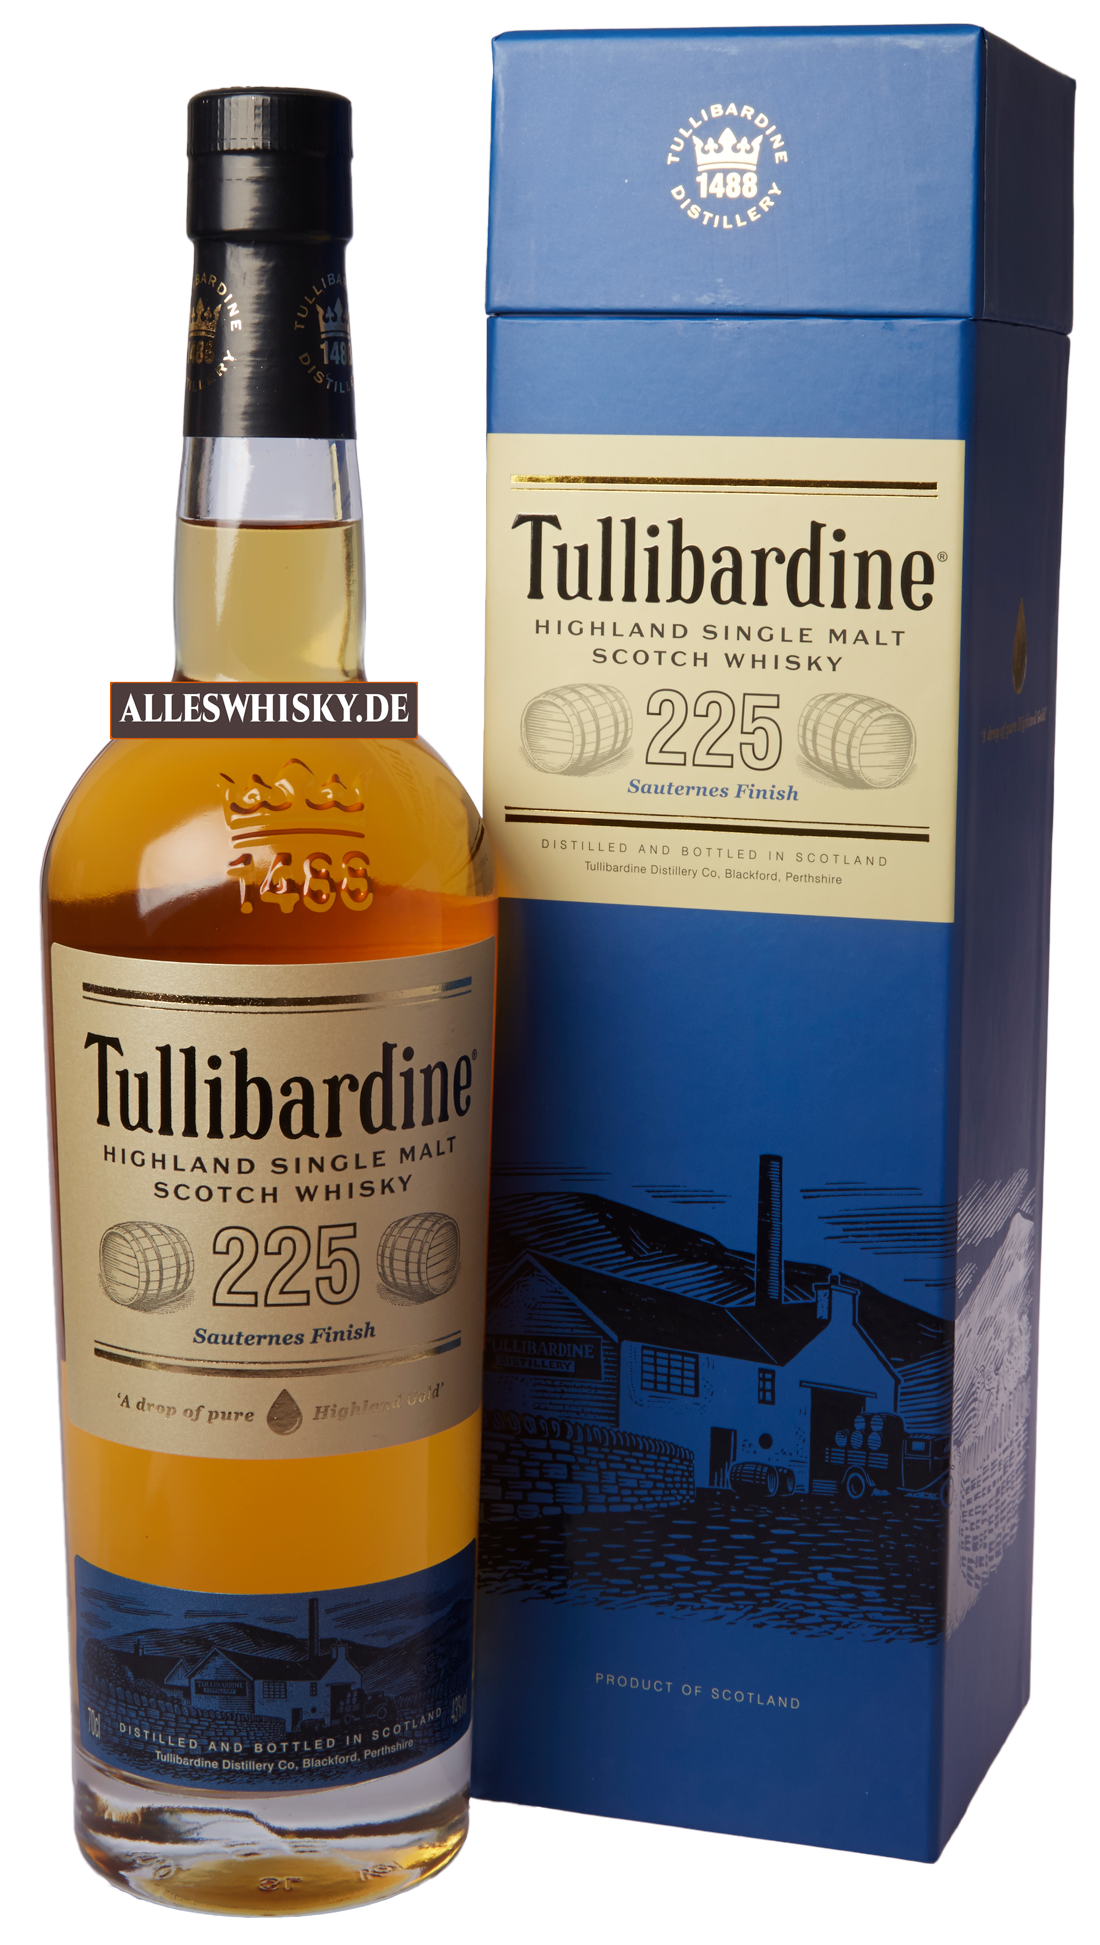 tullibardine 225 sauternes finish highland single malt scotch whisky schottland kaufen. Black Bedroom Furniture Sets. Home Design Ideas